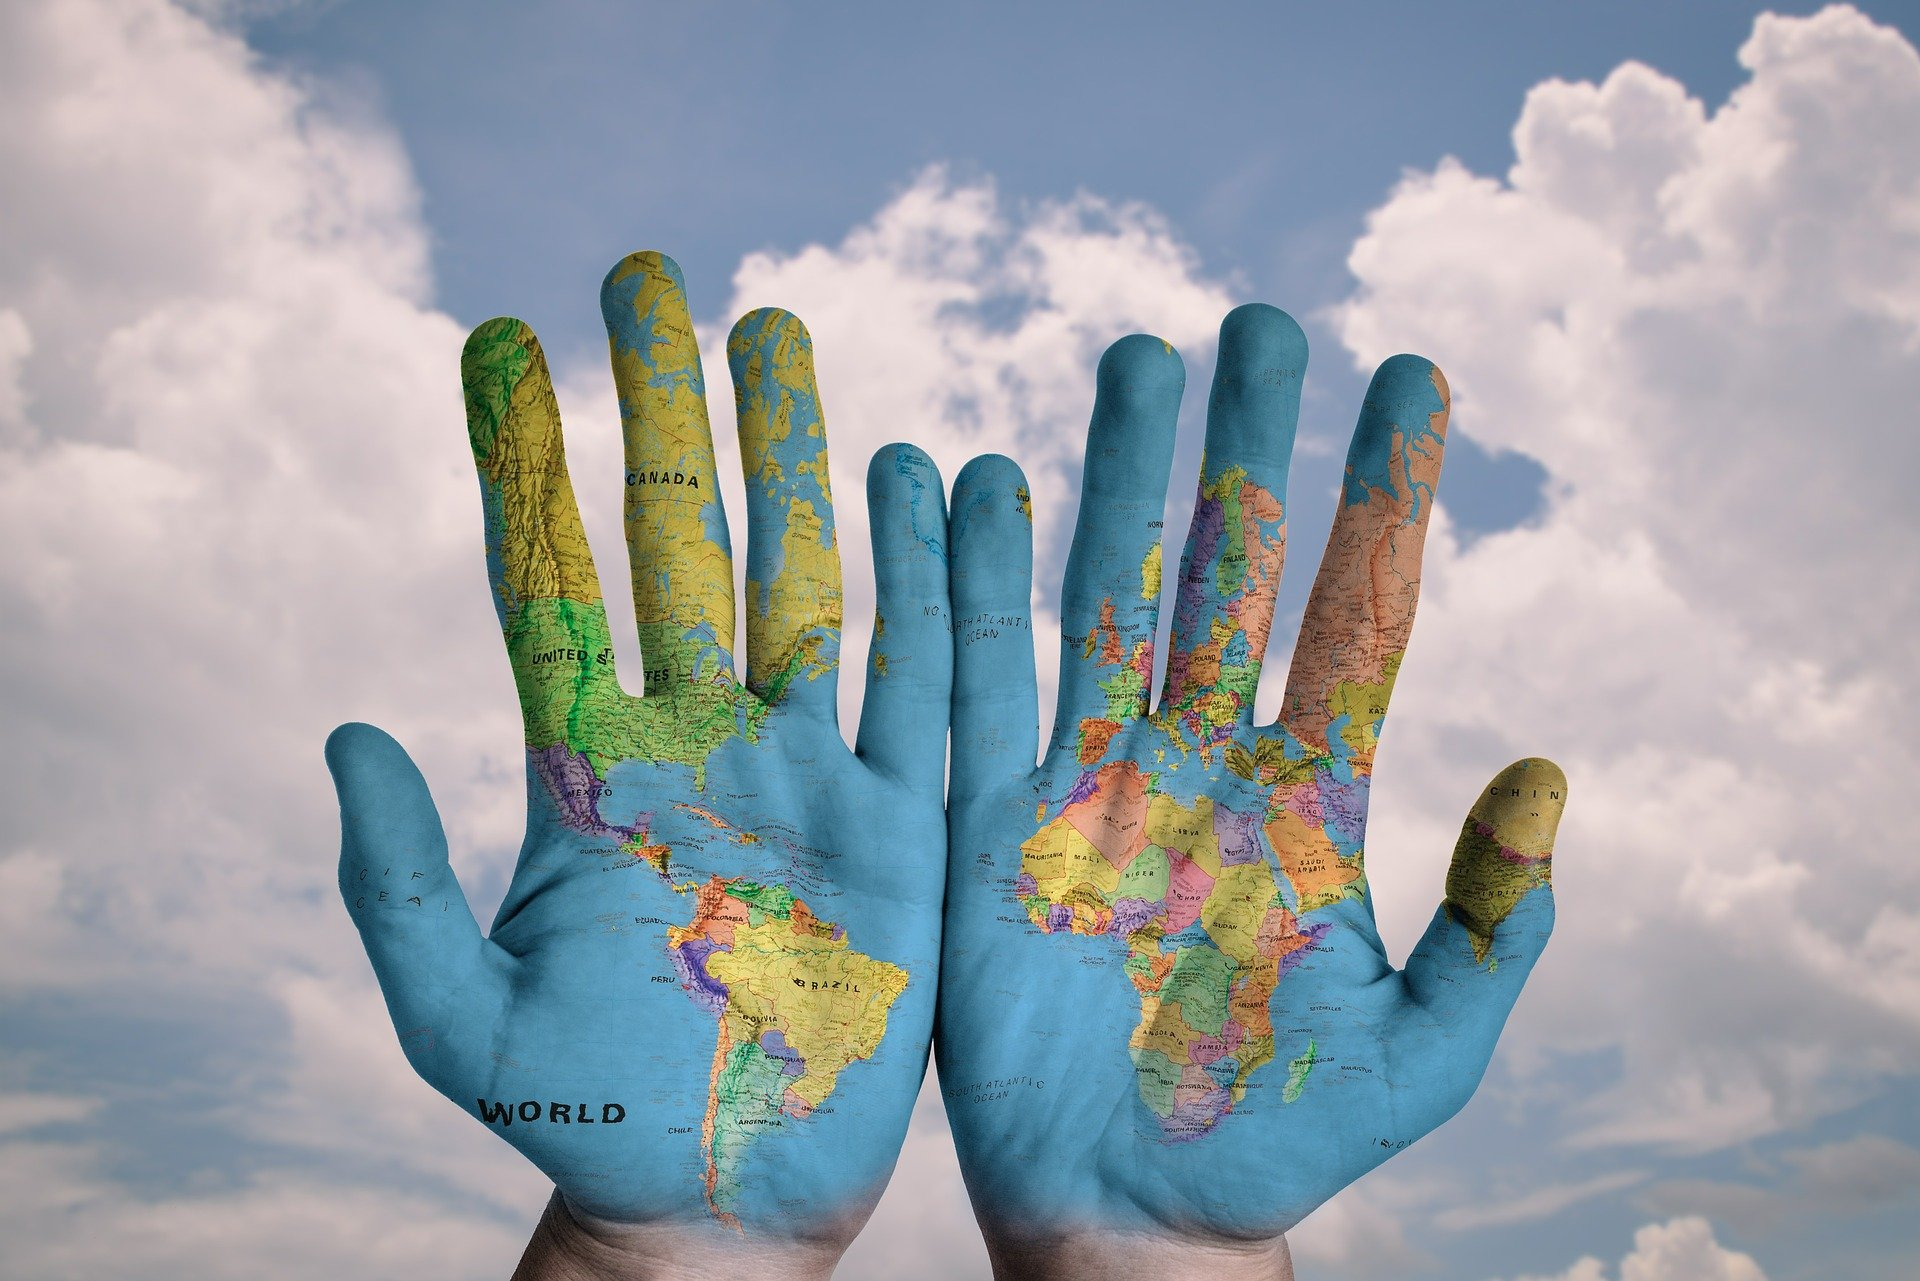 decorative image of hands with a globe